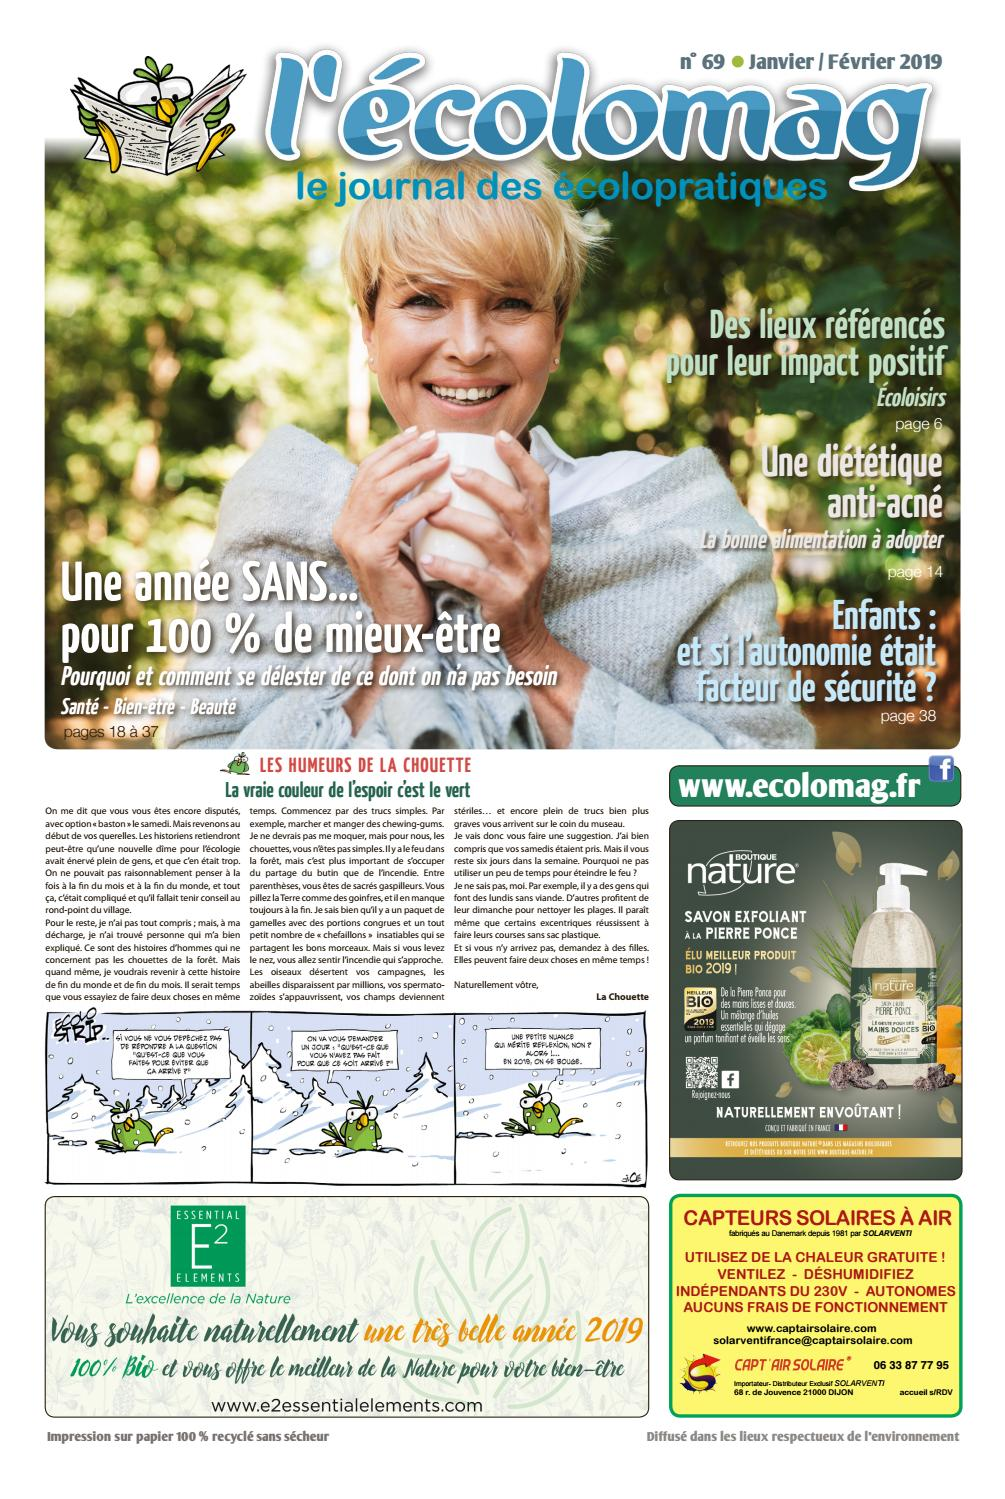 L Ecolomag n°69 by L Ecolomag - issuu 3ee2d05be647